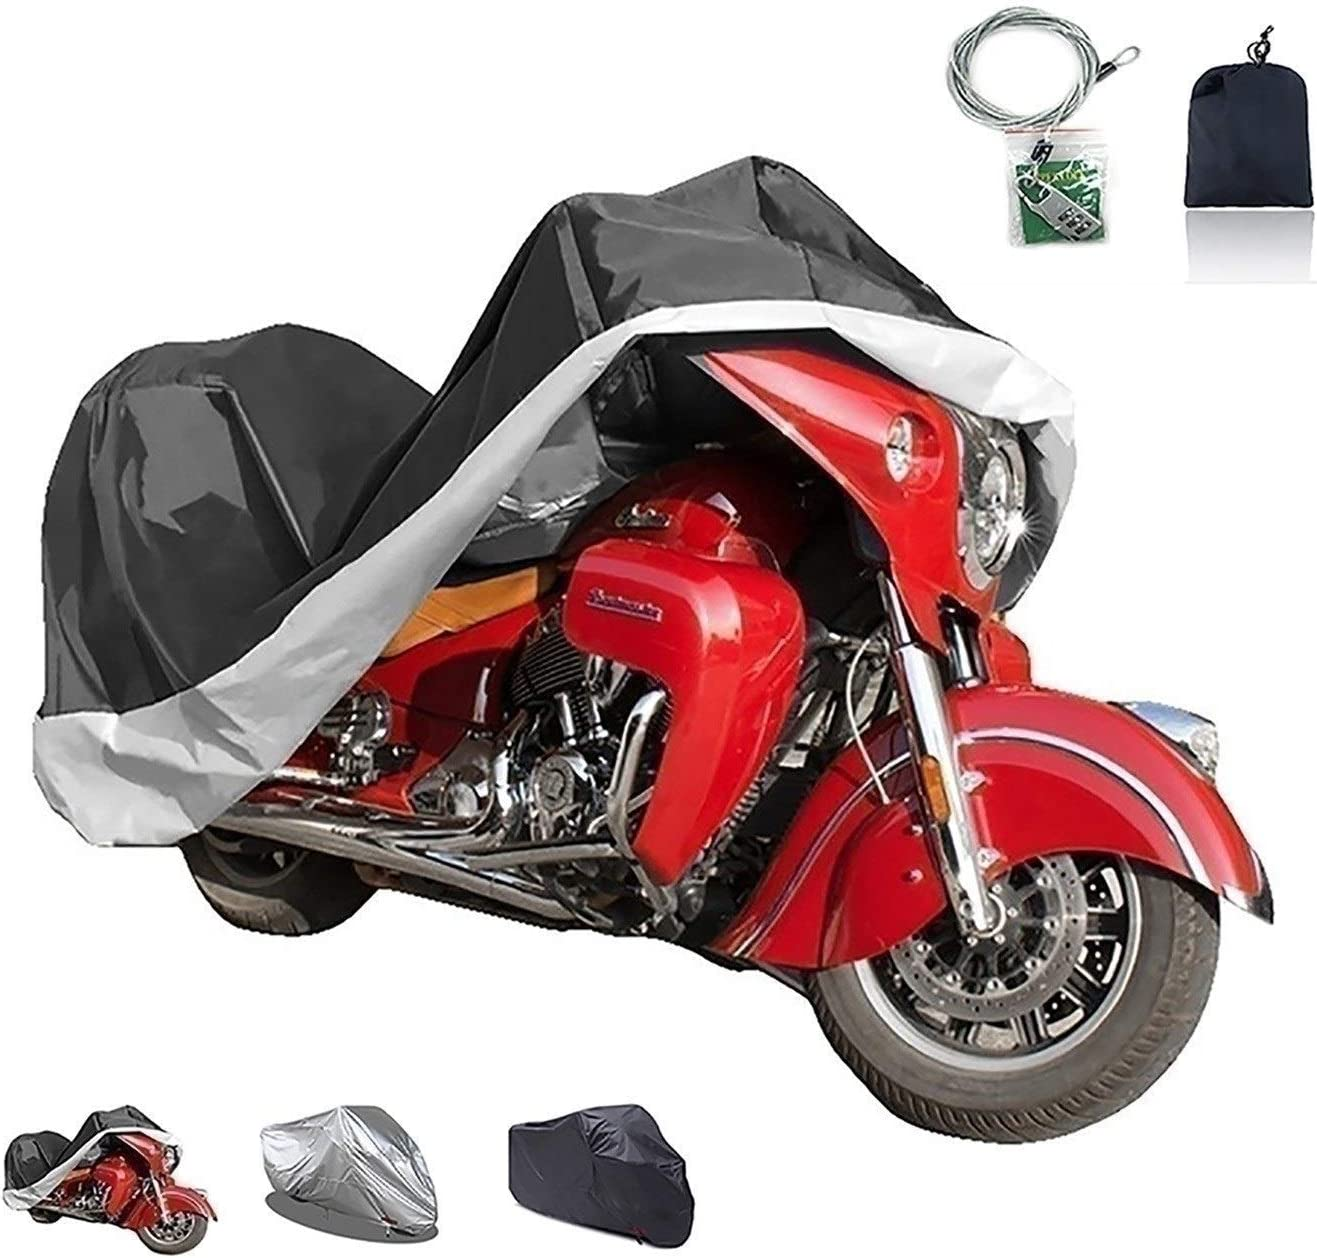 XJZHJXB Motorcycle Super-cheap Cover Norton Outlet ☆ Free Shipping with Compatible